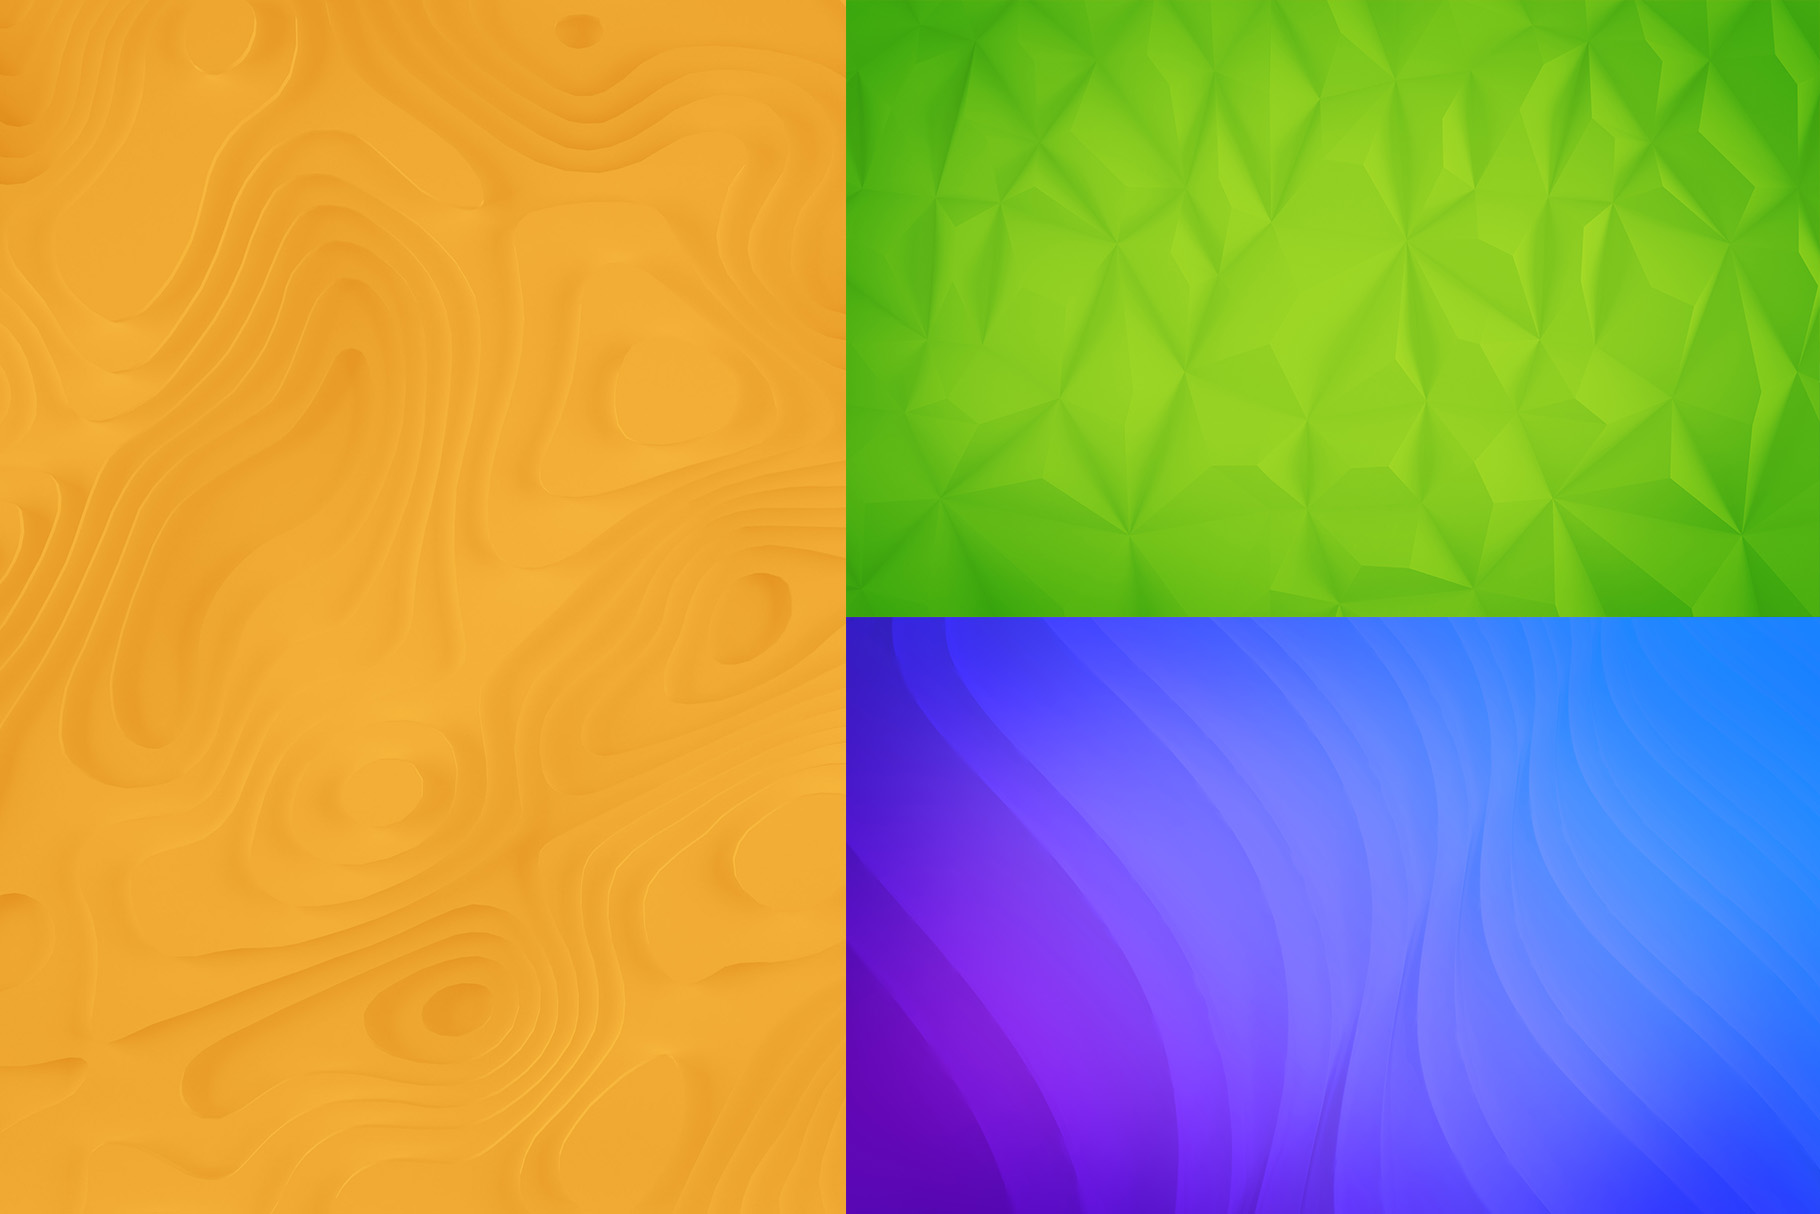 Abstract Backgrounds Volume 1 example image 2